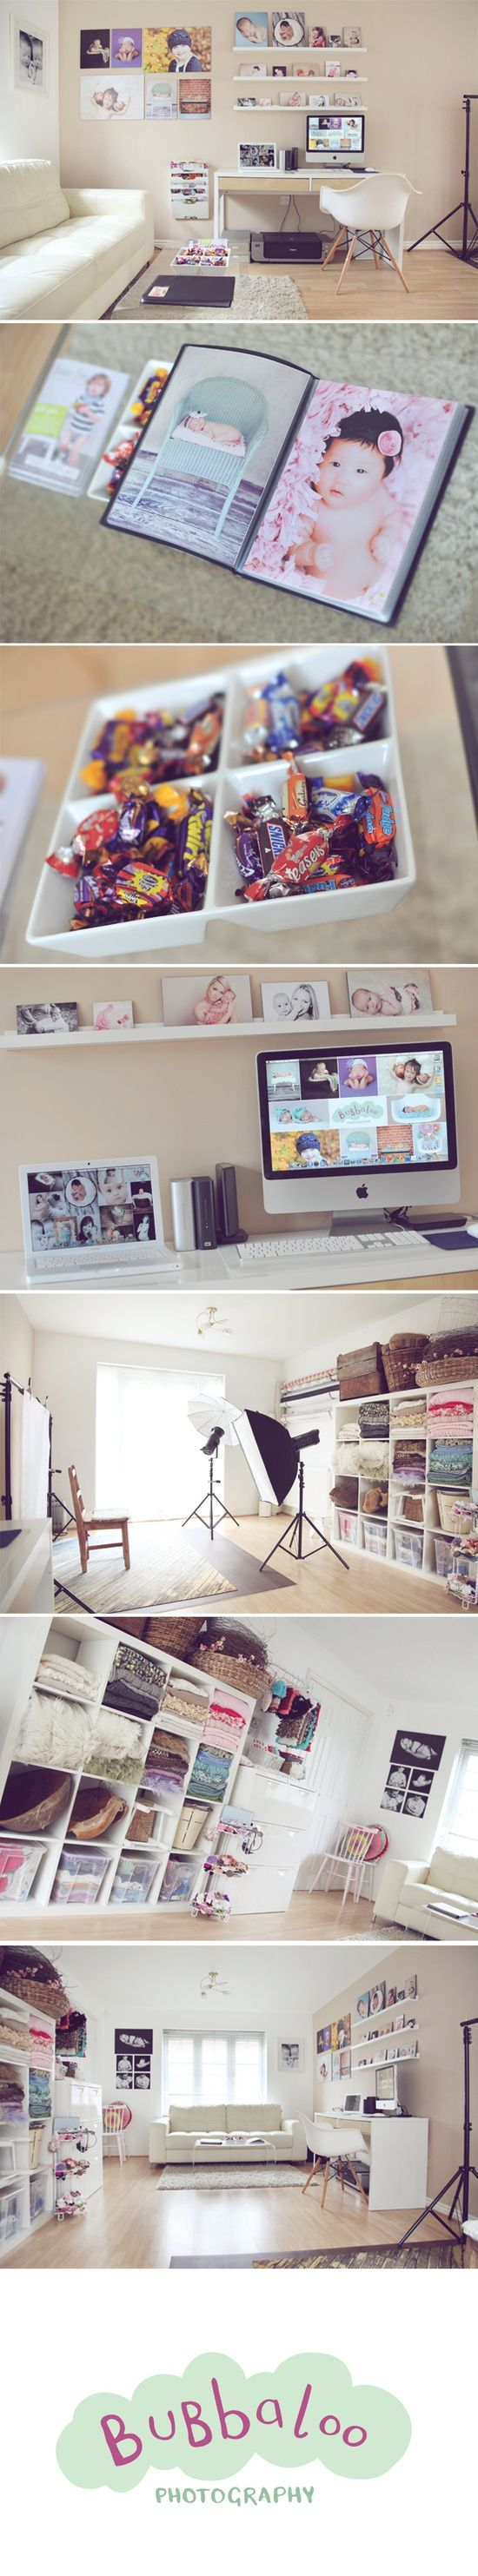 Great small studio space -Bubbaloo Photography @ Home Improvement Ideas